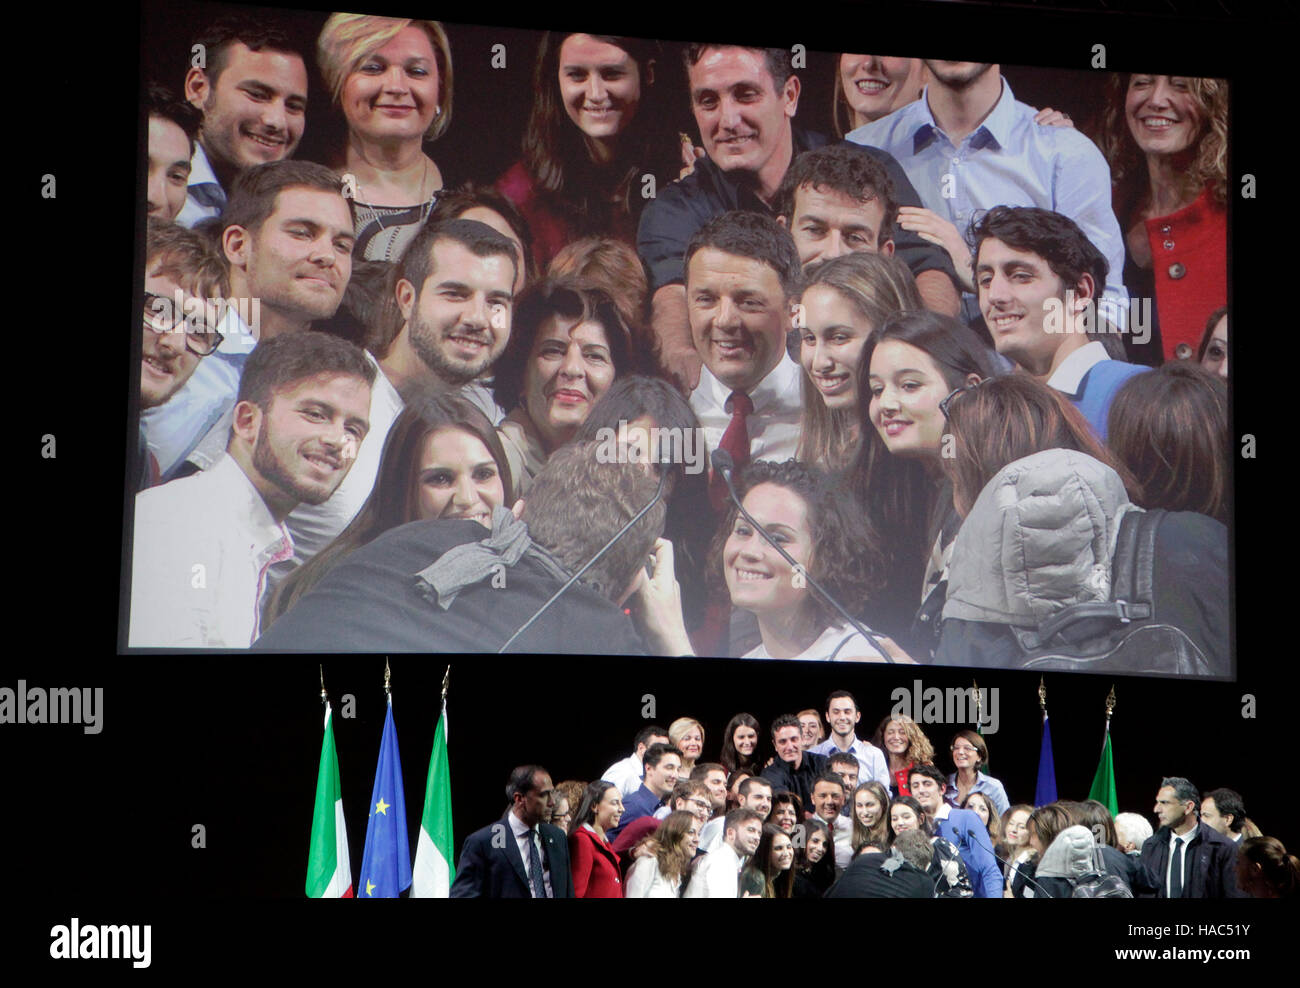 Matteo Renzi, Italy's prime ministre poses for a group photograph with supporters for referendum ''Yes'' - Stock Image